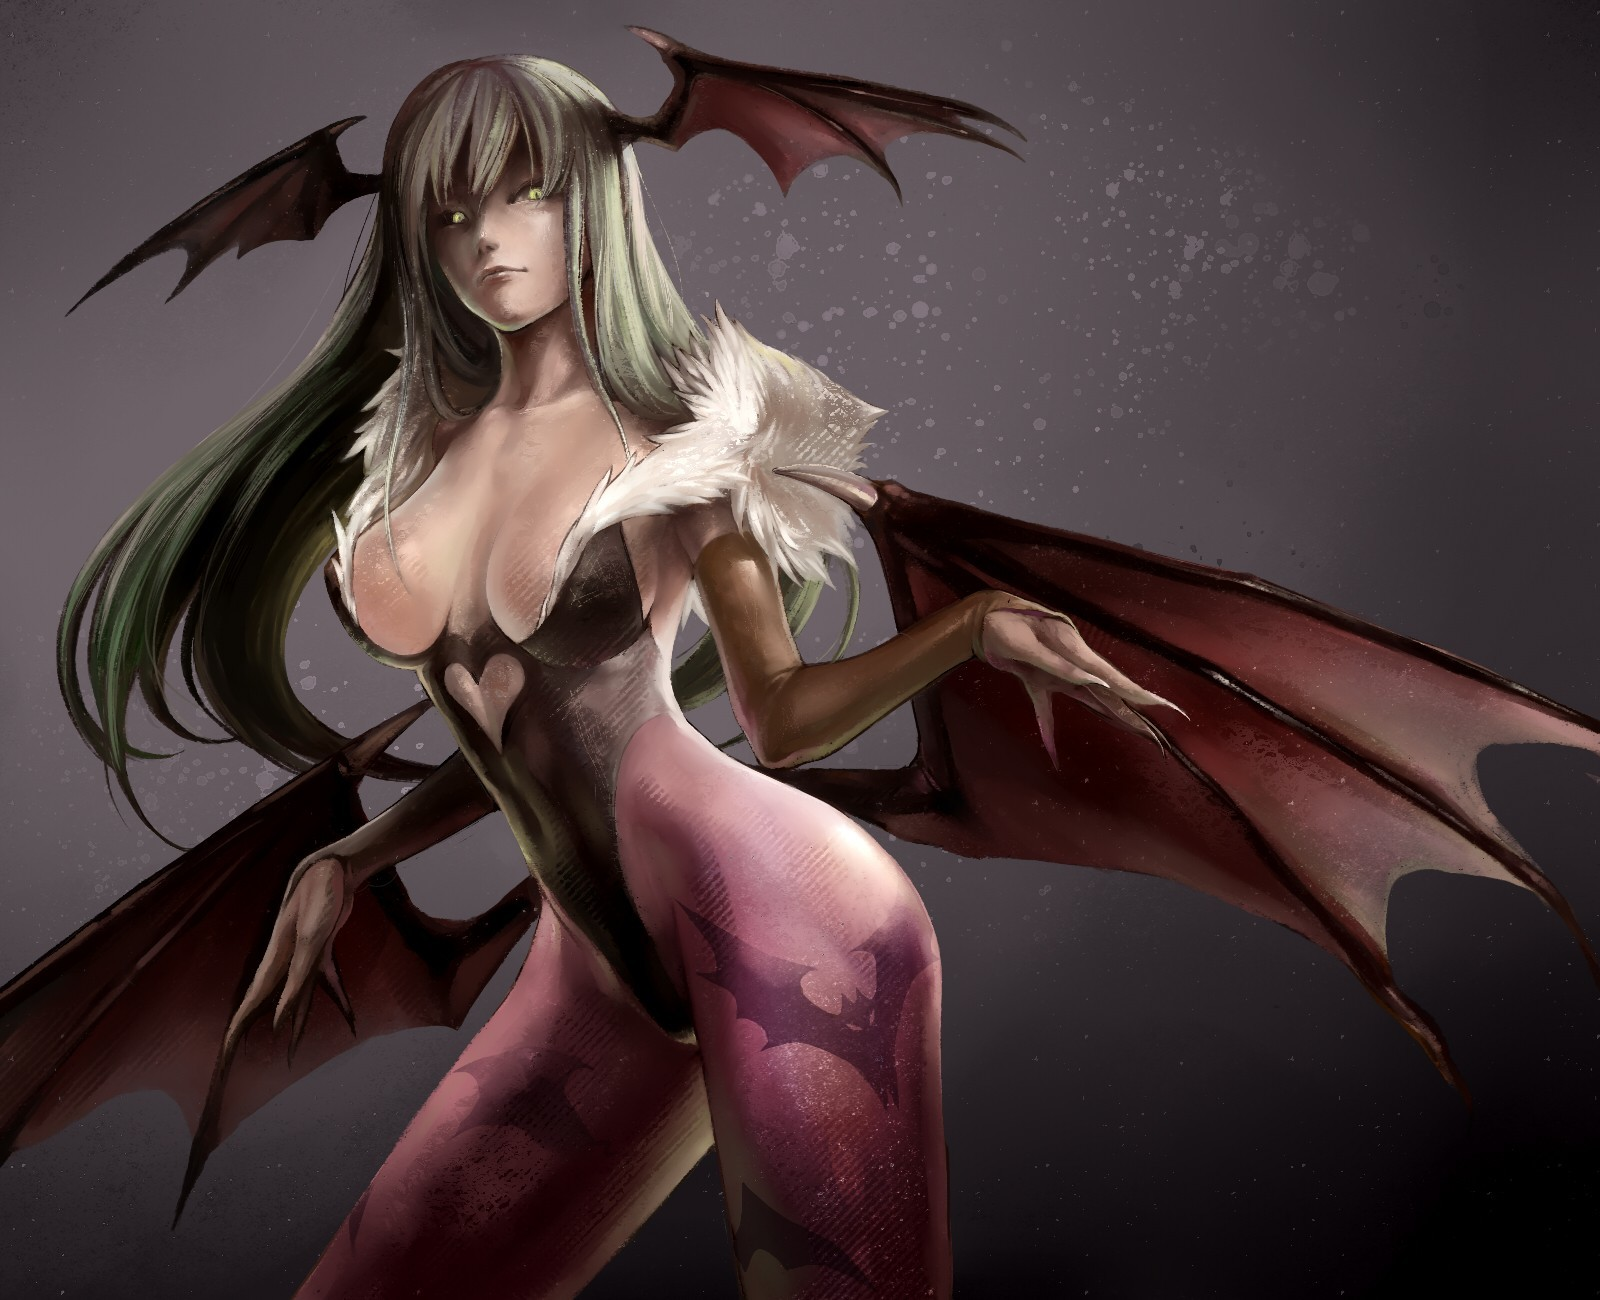 Morrigan Aensland Demon Girl HD Wallpaper